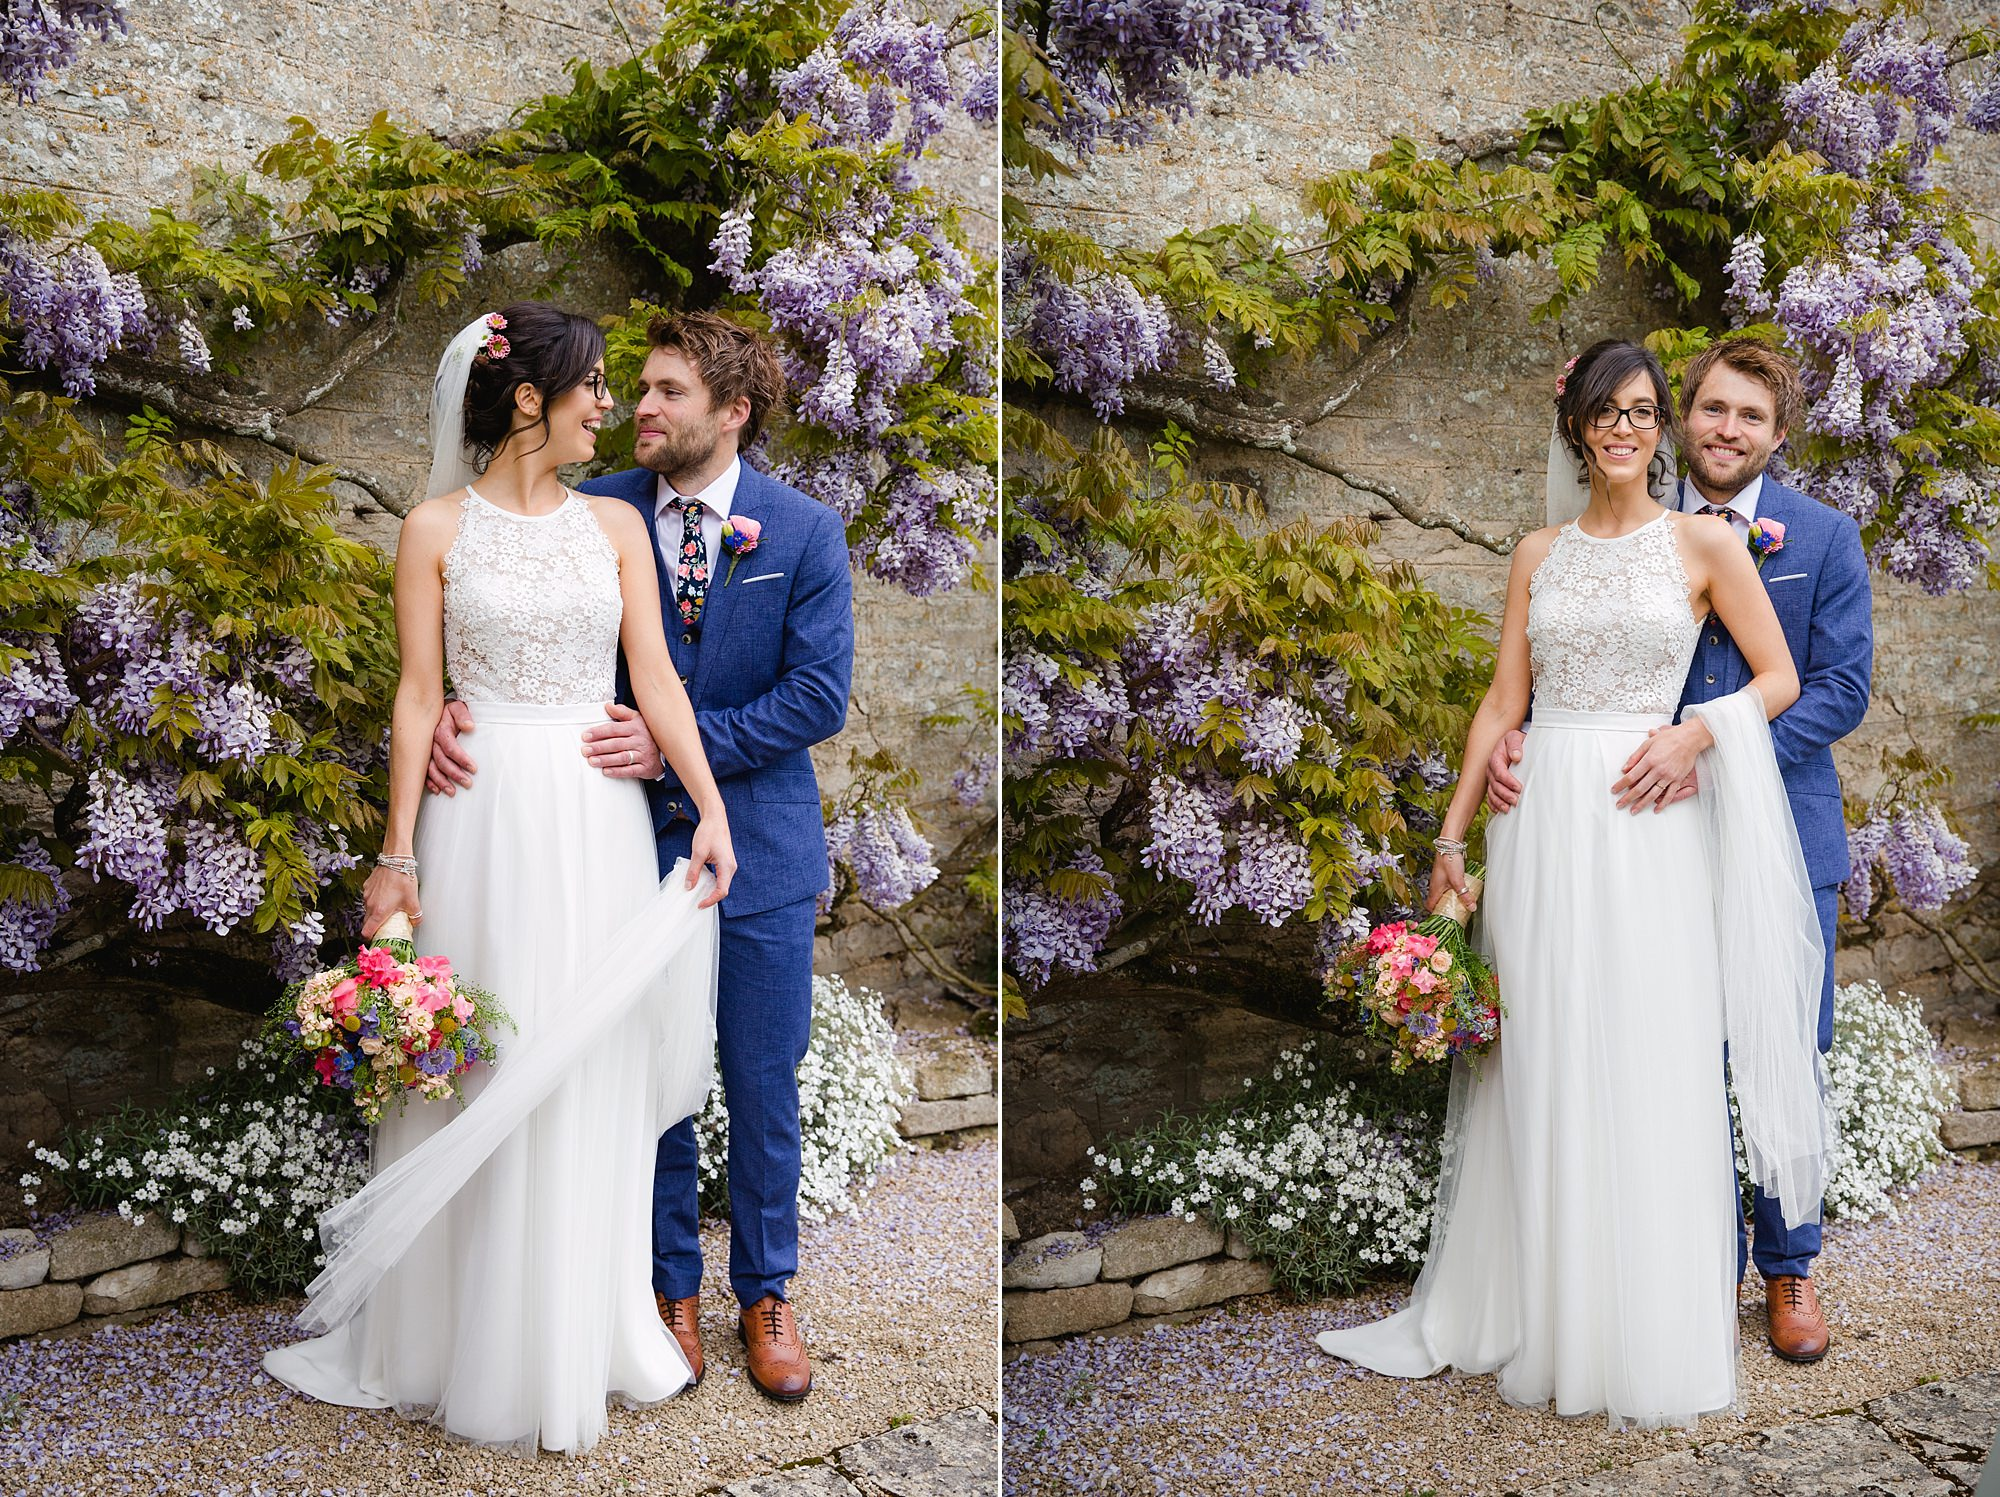 Caswell House Wedding portrait of bride and groom together in front of wisteria wall